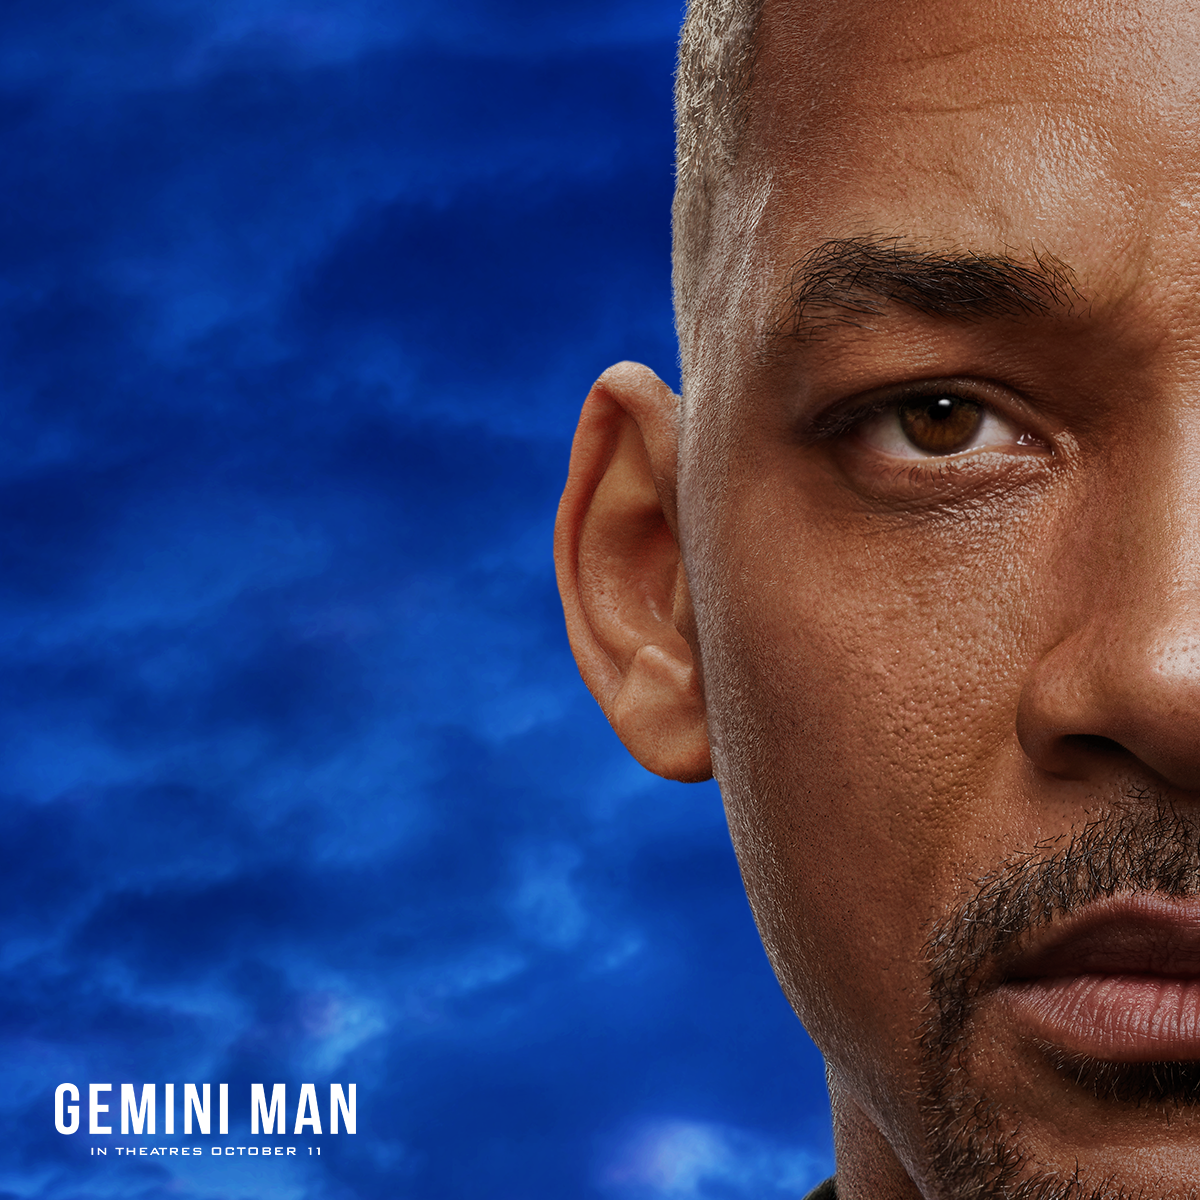 Watch Gemini Man In Theaters 10 11 19 Gemini Man Gemini Paramount Pictures